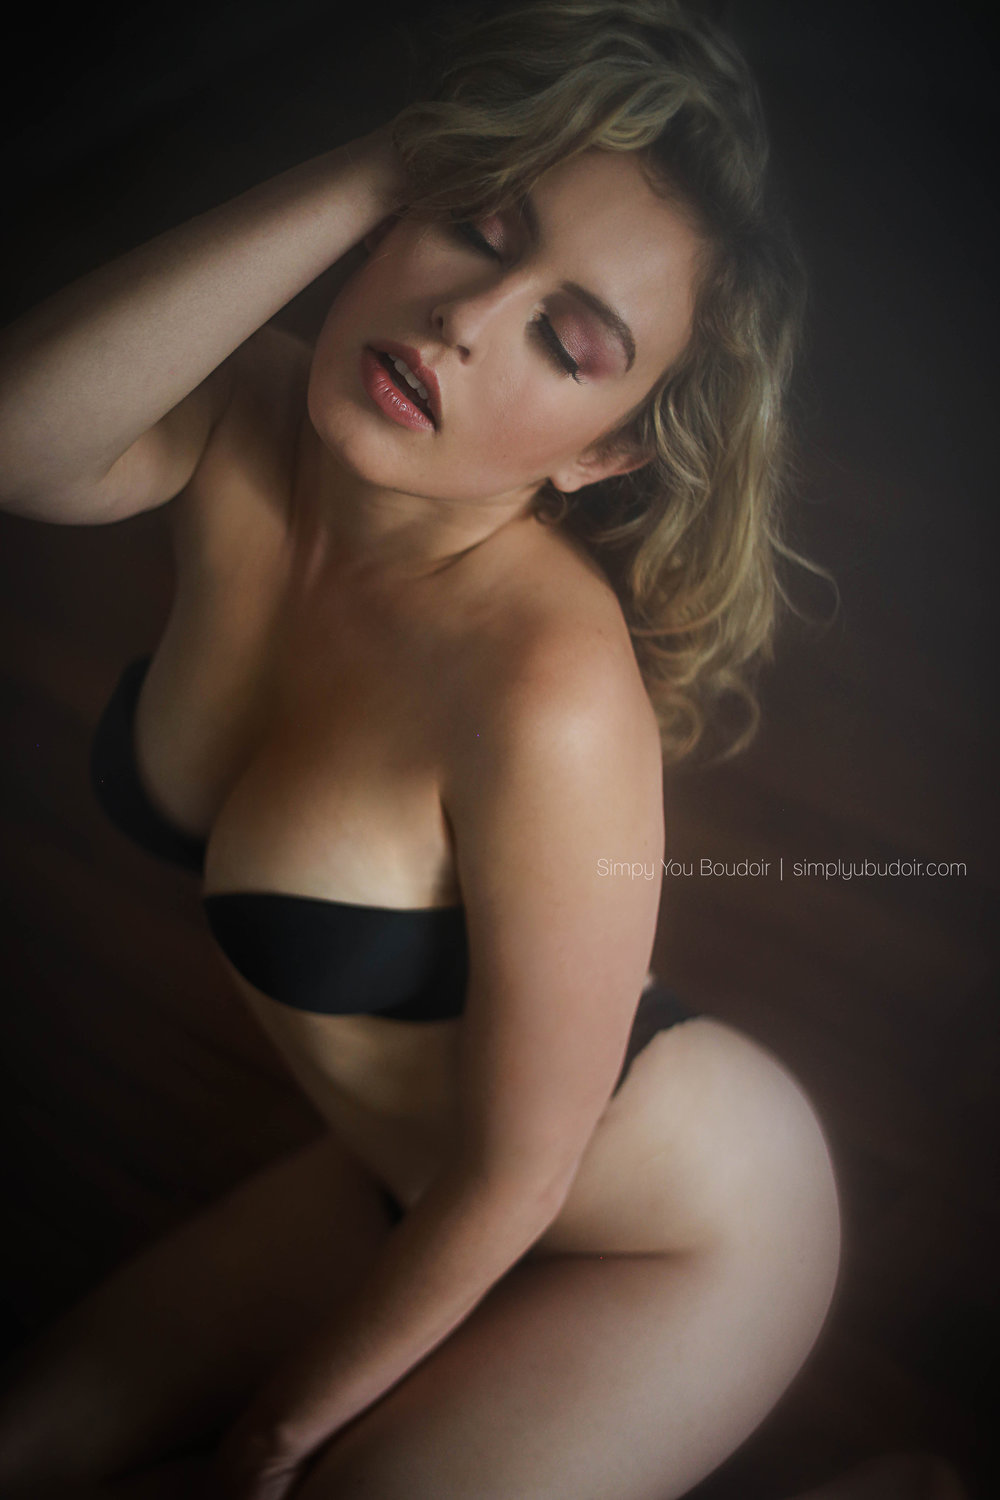 Simply You Boudoir | www.simplyouboudoir.com